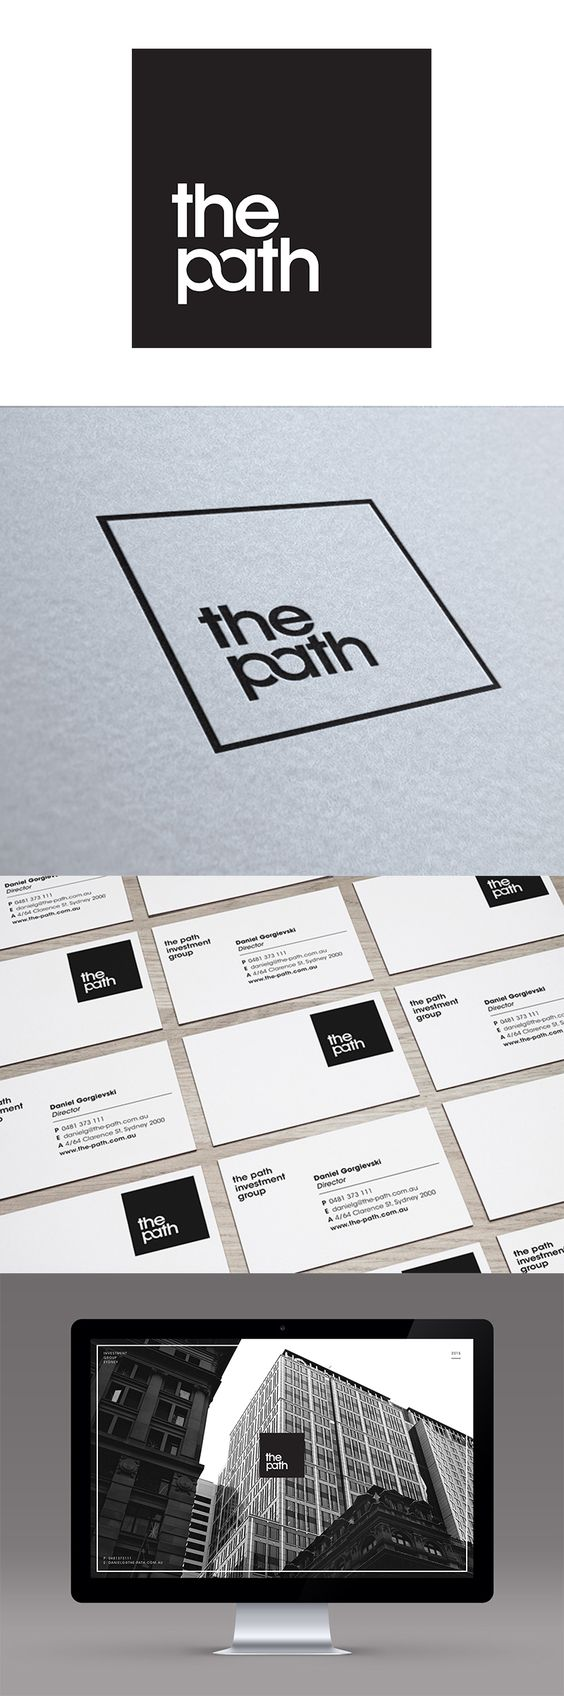 As one of Sydney's emerging investment companies, The Path approached Made to design a new logo mark. In response our team created an eye-catching identity that symbolises strength, security and reliability.graphic design logo inspiration design sydney made agency corporate stationery webdesign website web